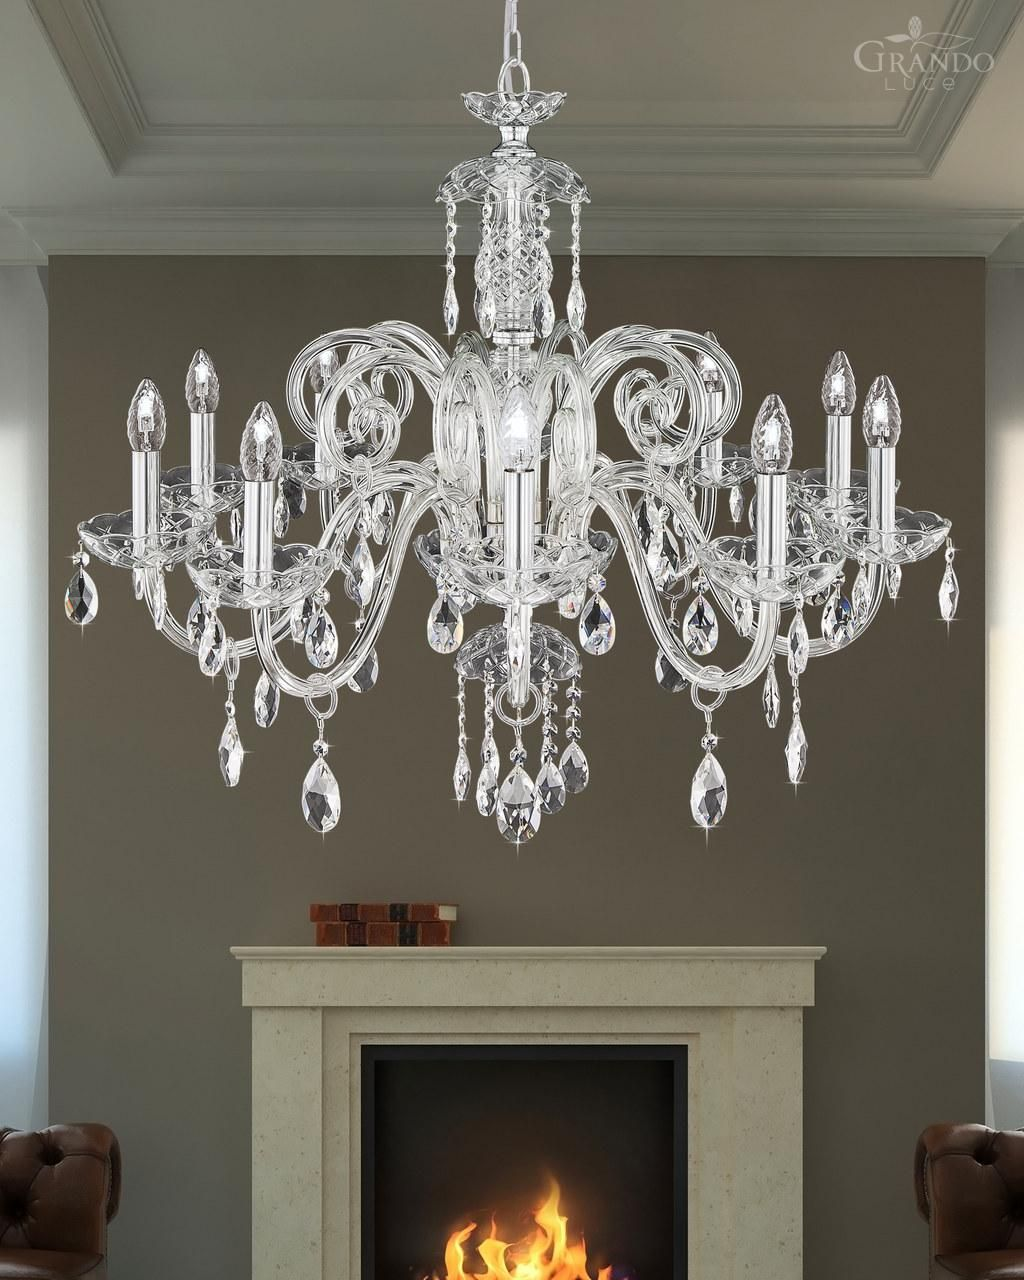 10610 ch chrome crystal chandelier decorated with swarovski 10610 ch chrome crystal chandelier decorated with swarovski spectra crystal grandoluce arubaitofo Gallery